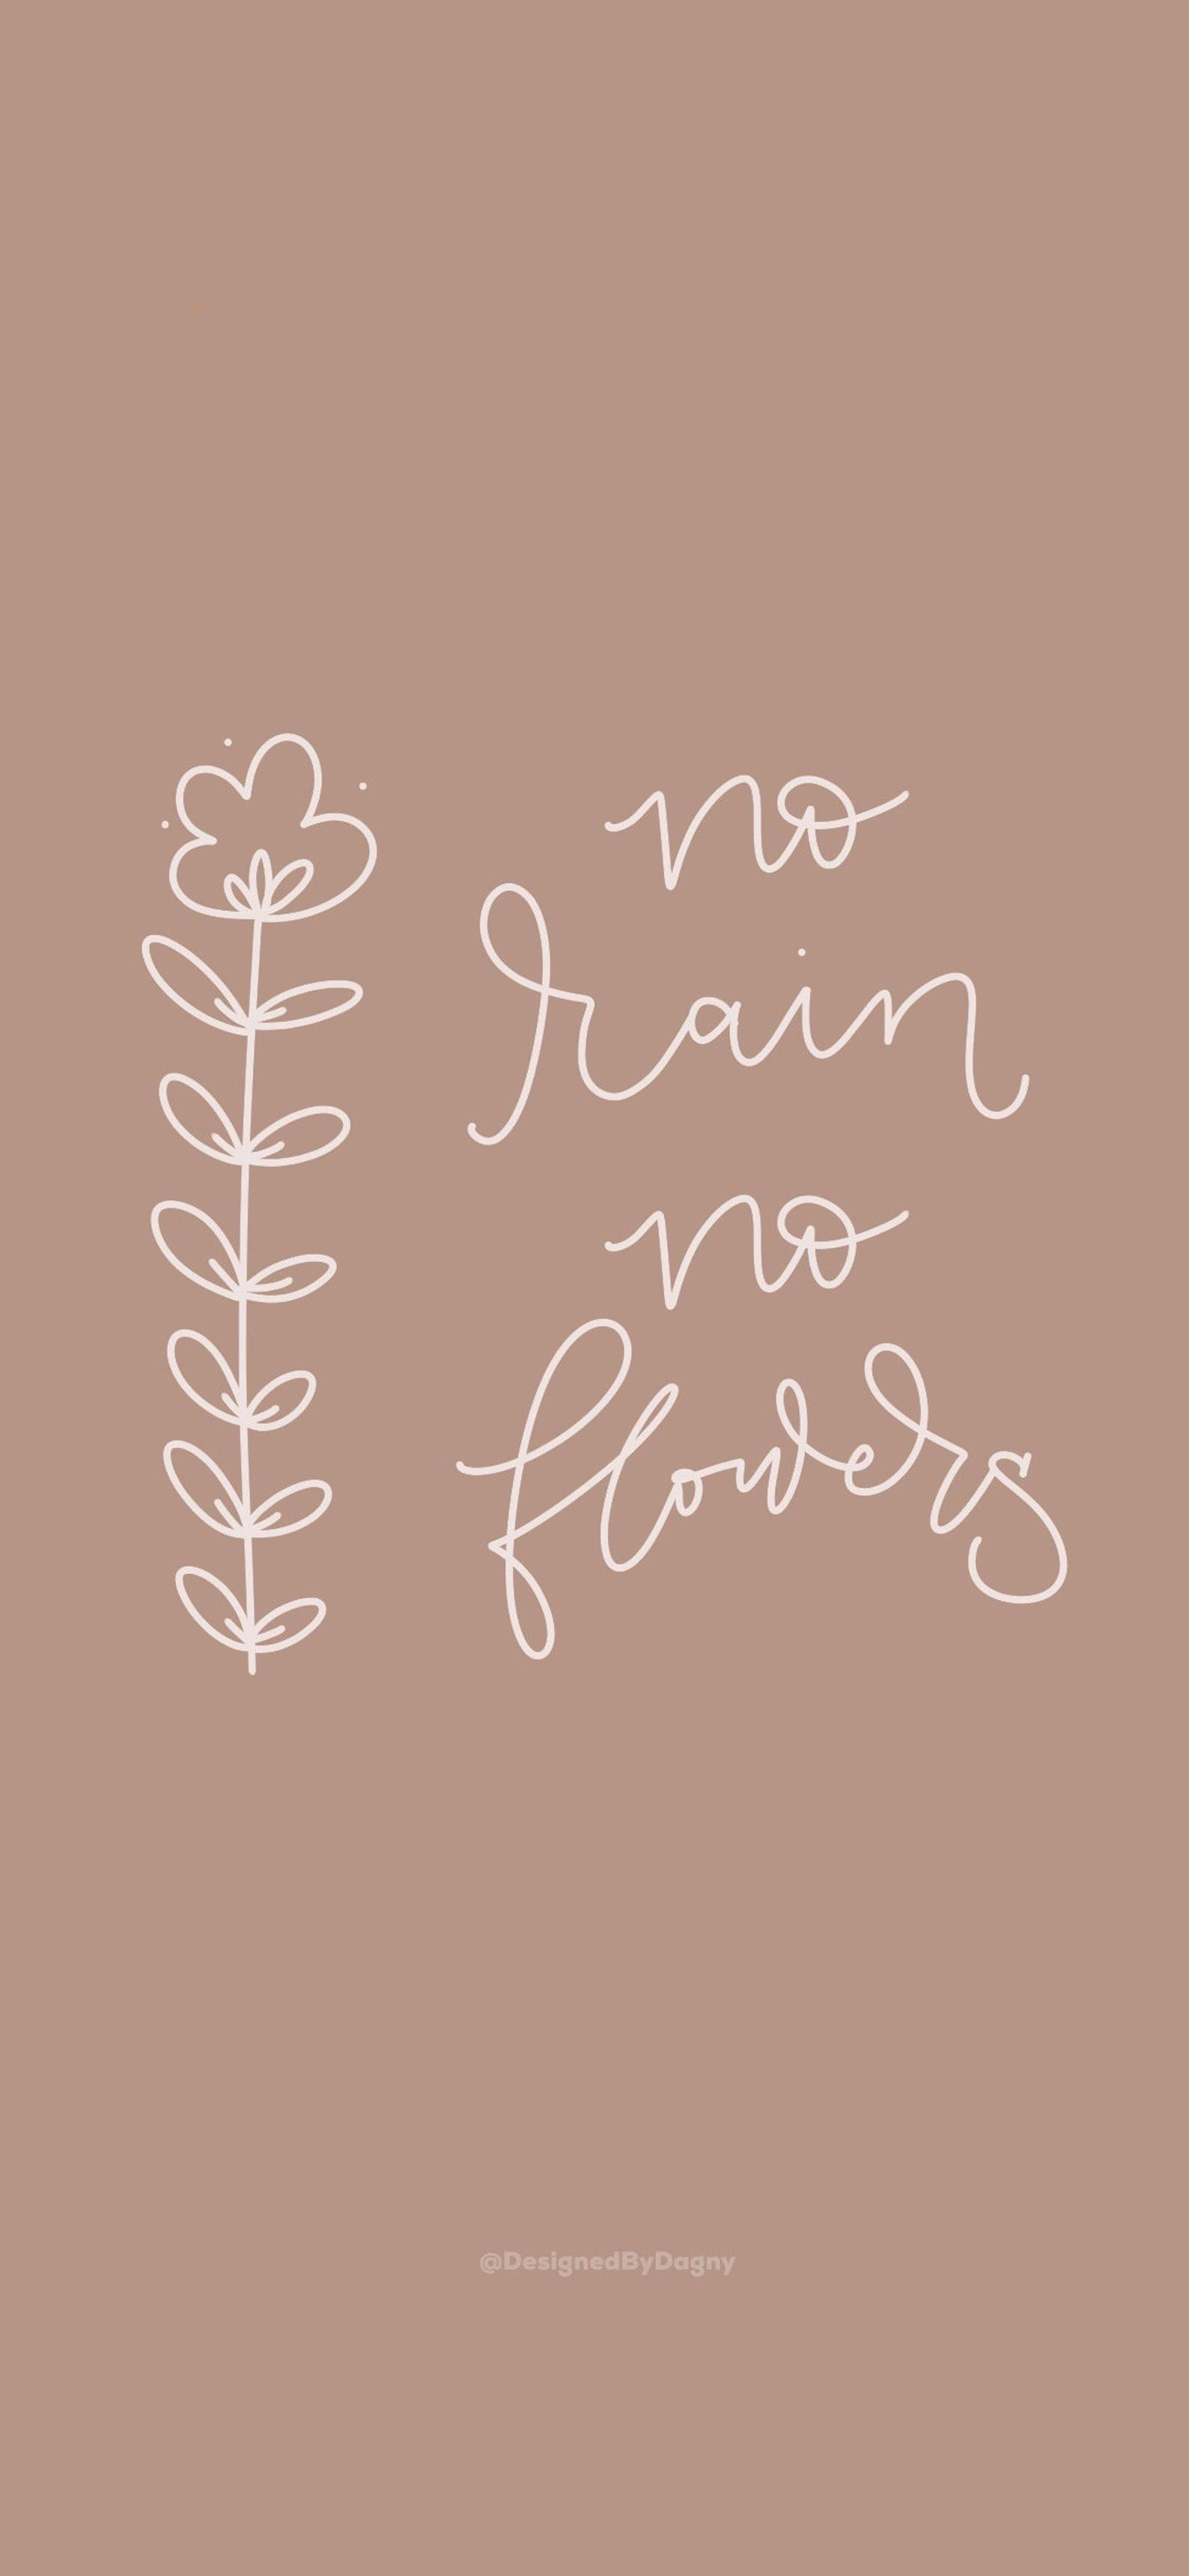 No Rain No Flowers Inspirational Iphone Wallpaper Cell Phone Wallpaper Phone Background Mobile Phone Wallpaper Iphone Background Inspirational Phone Wallpaper Phone Wallpaper Quotes No Rain No Flowers